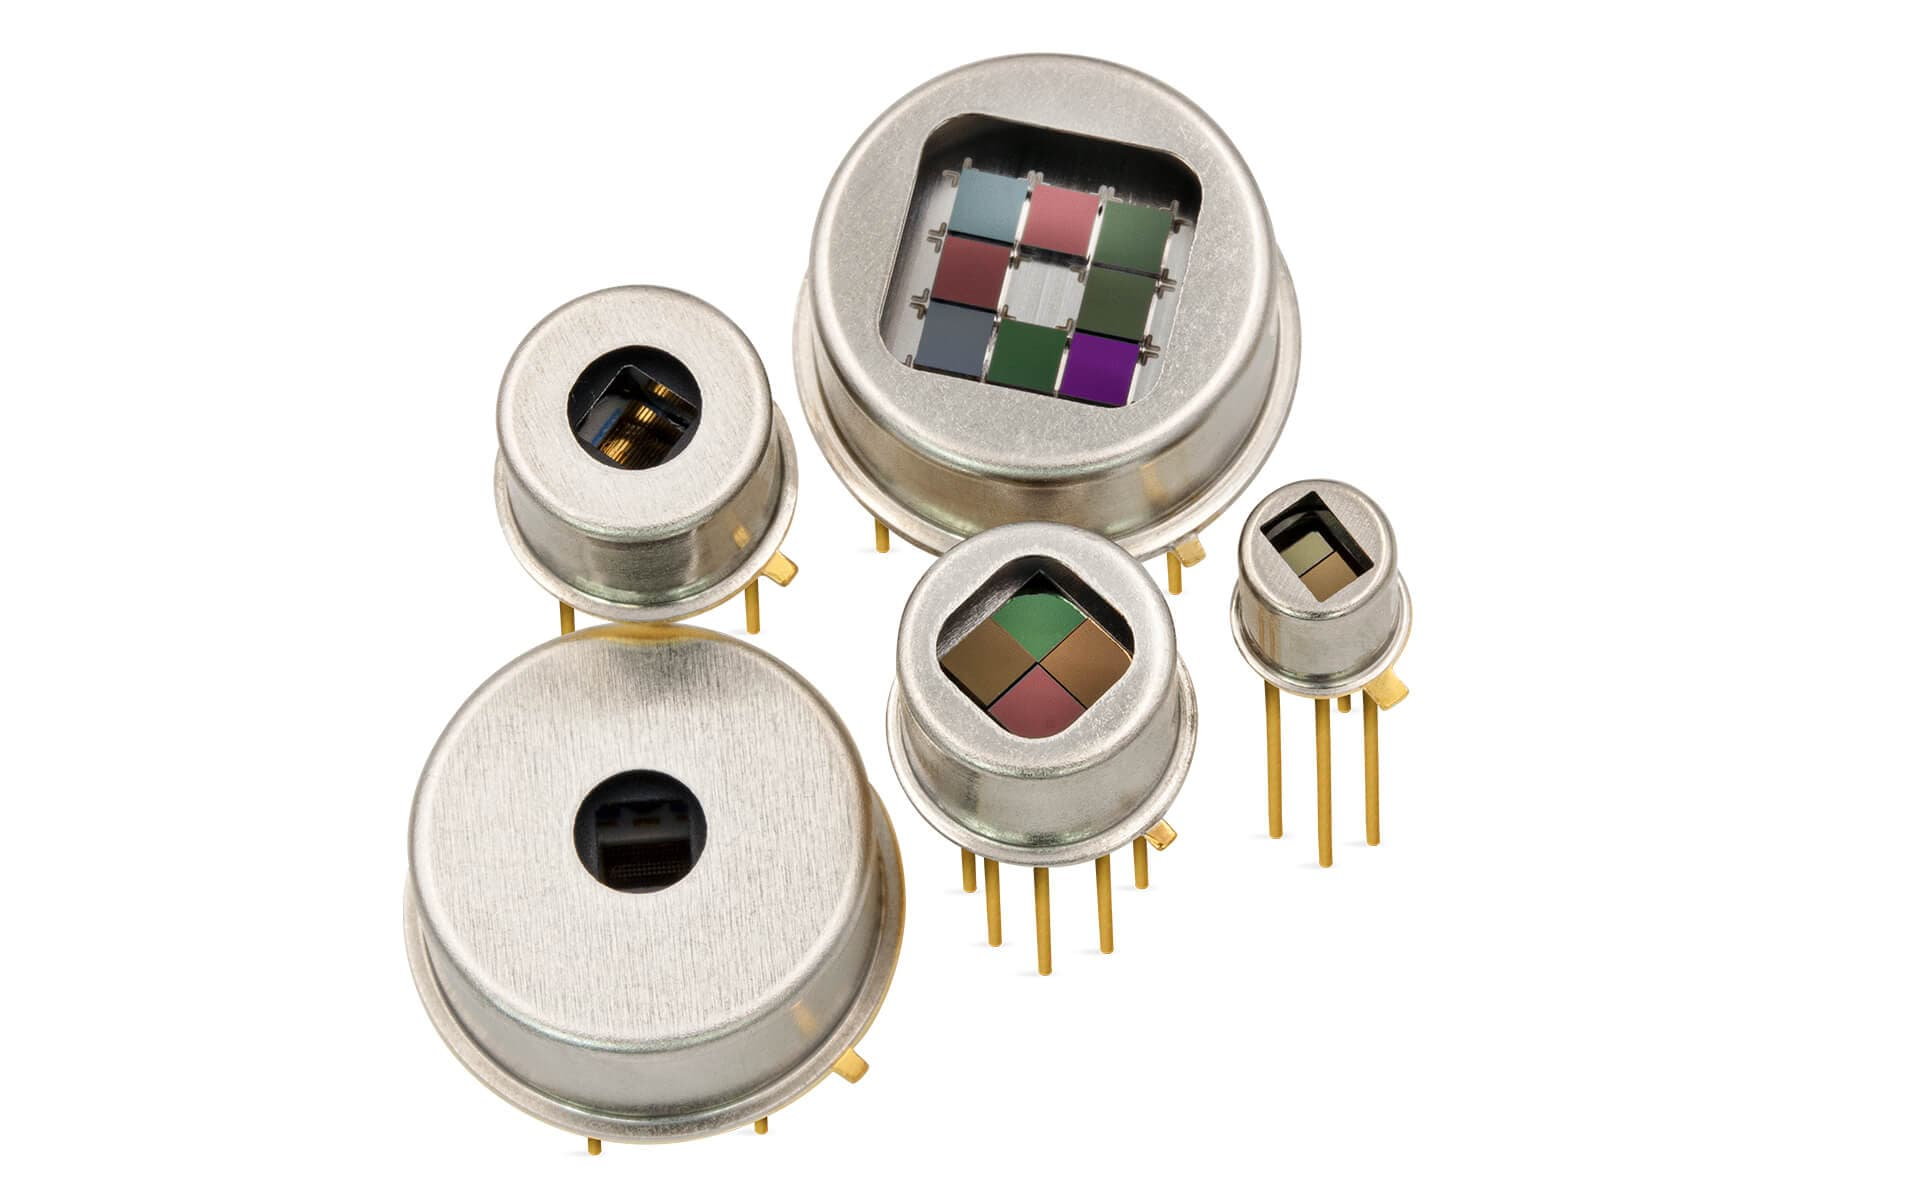 PYROMID® multi channel pyroelectric detectors from InfraTec